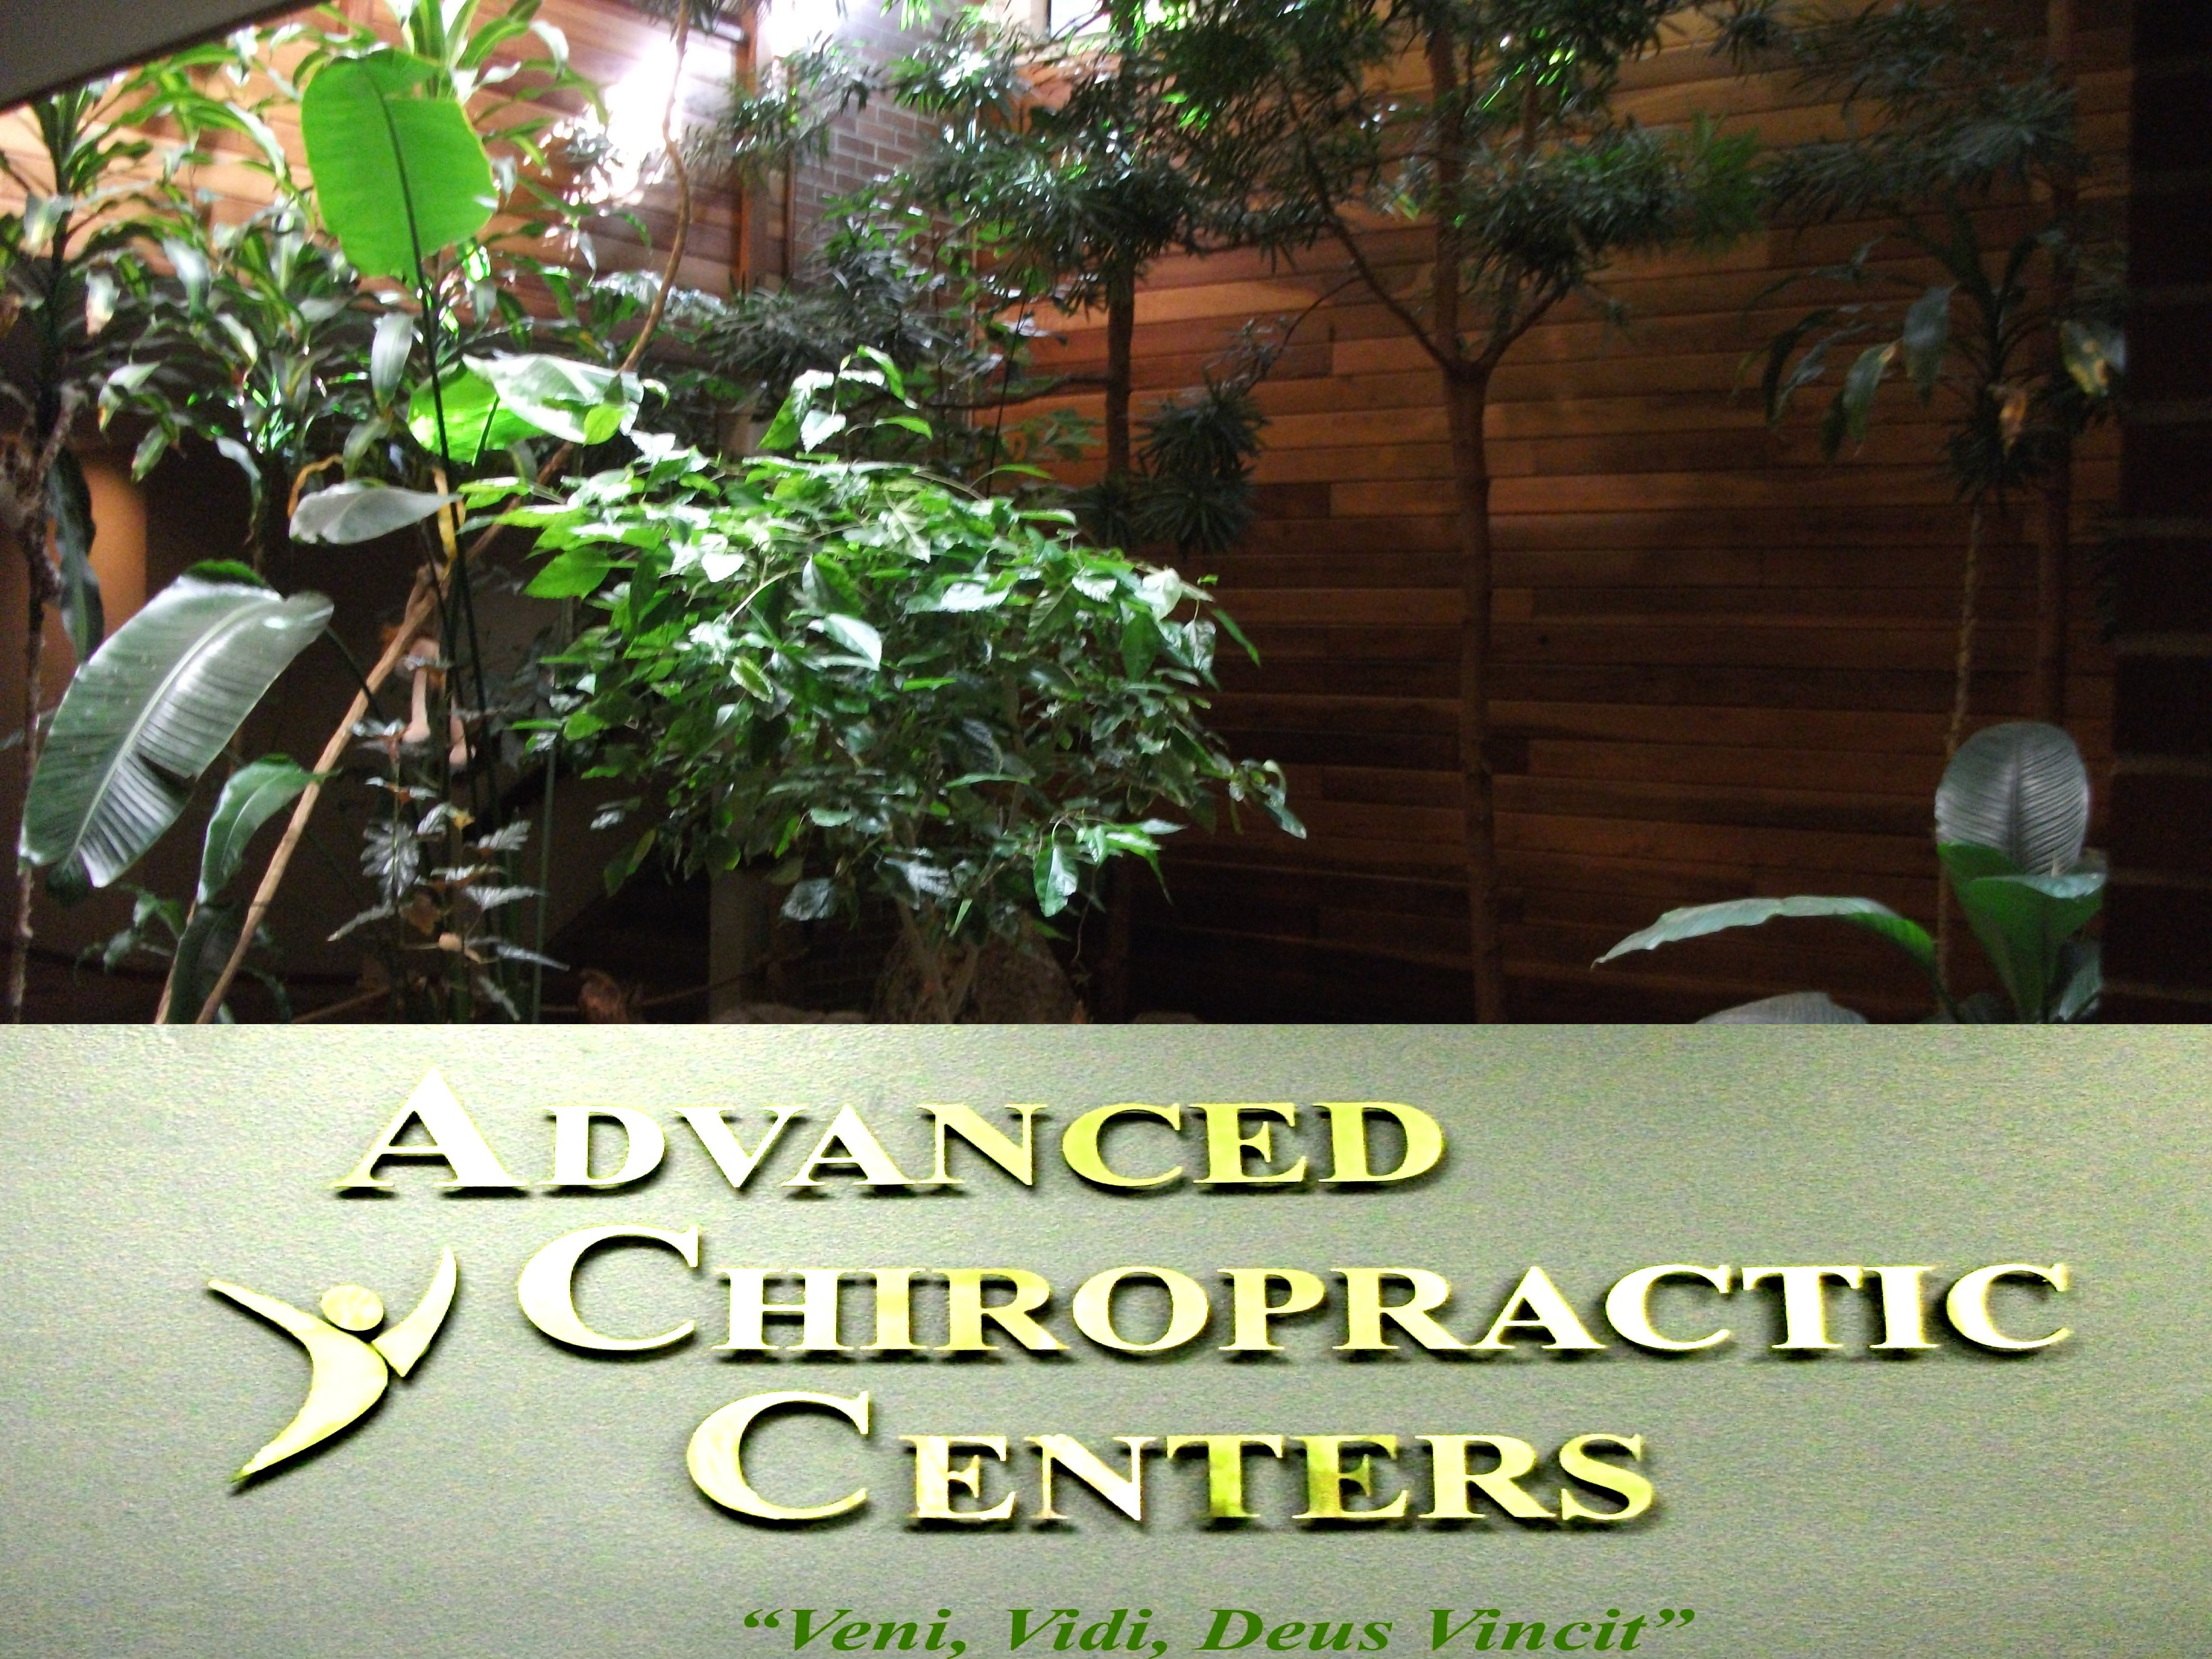 ADVANCED CHIROPRACTIC CENTERS